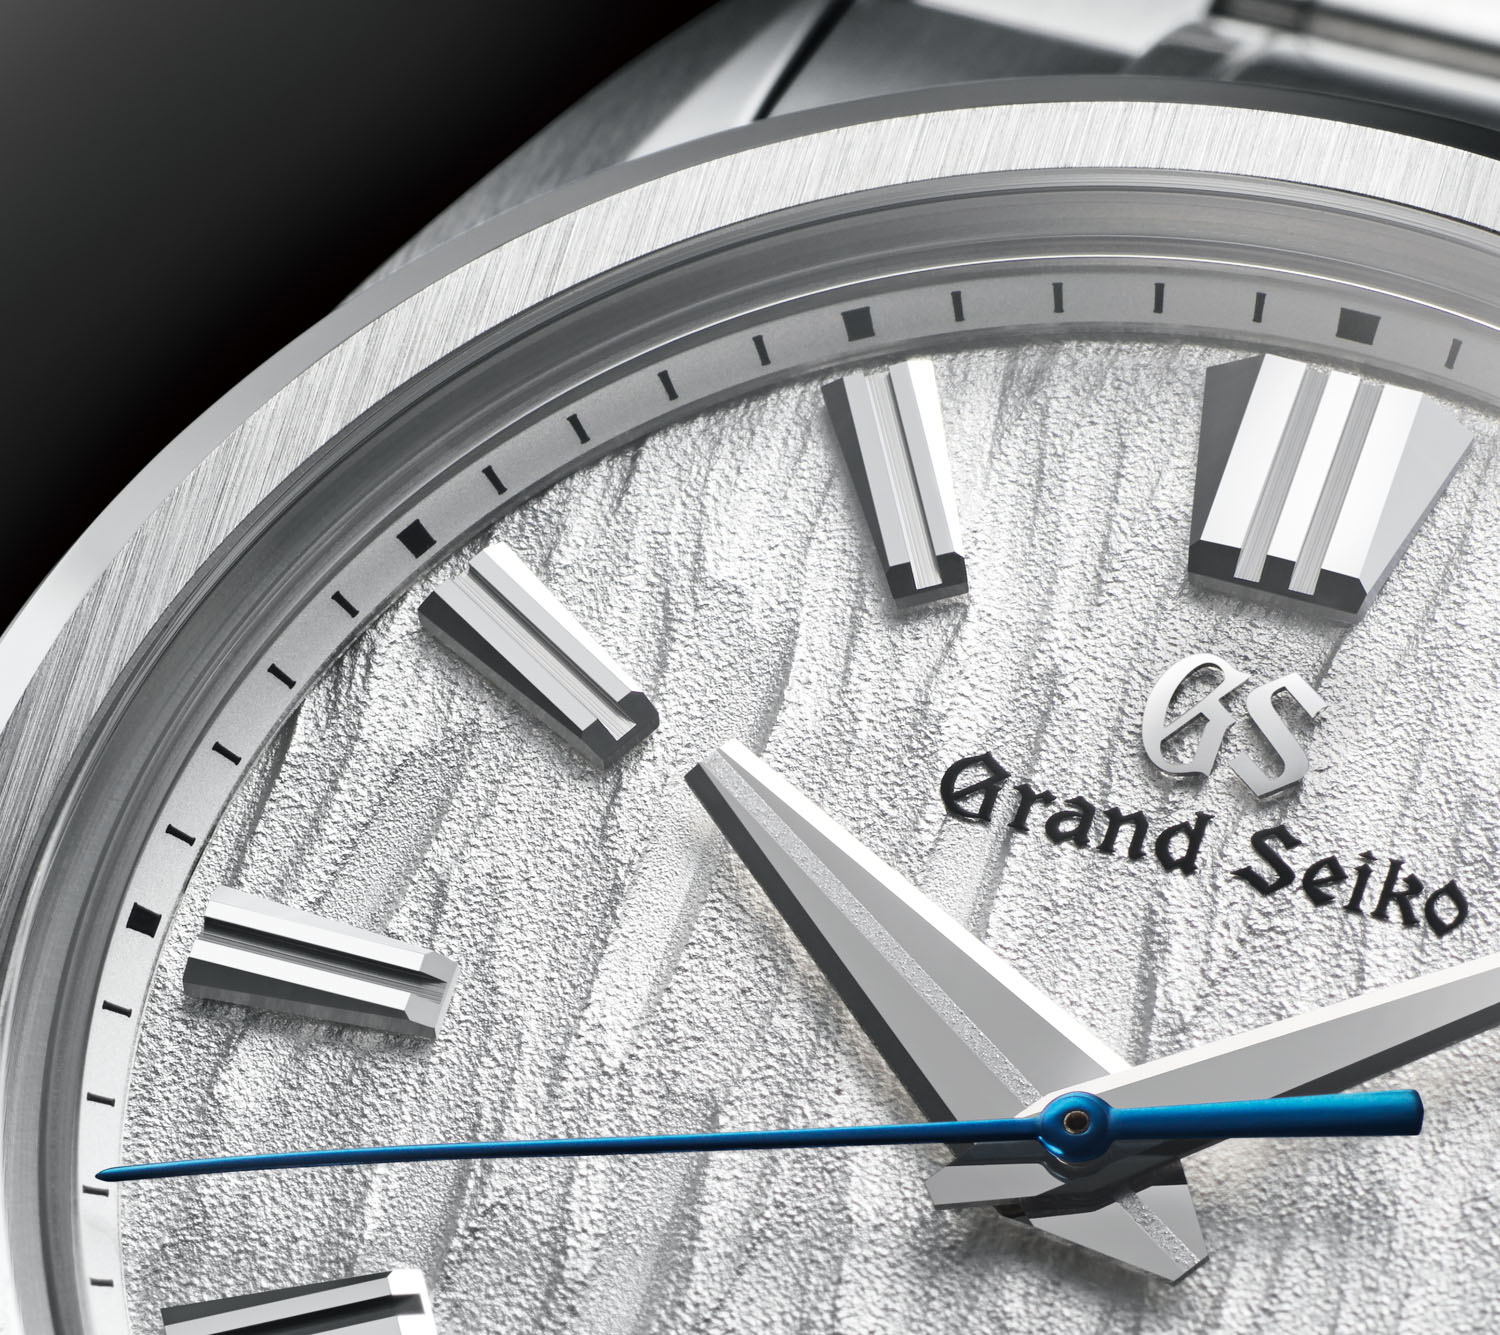 Heritage Collection Series 9 SLGH005 with its dial inspired by white birch trees that grow near the Grand Seiko Studio Shizukuishi in the northern part of Japan, where this watch is made